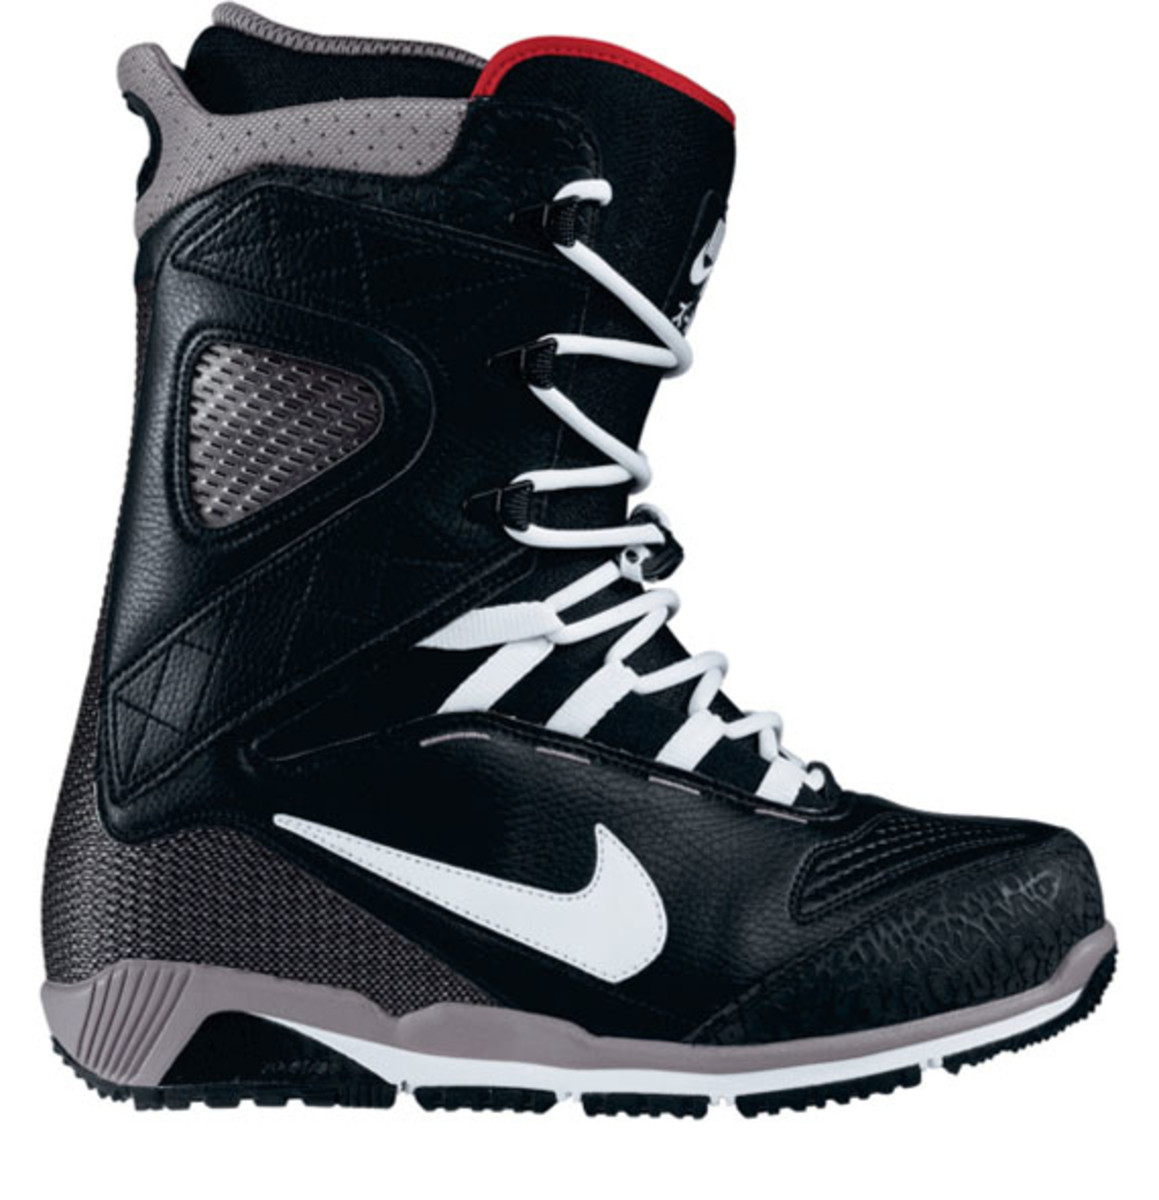 nike-snowboarding-boots-7